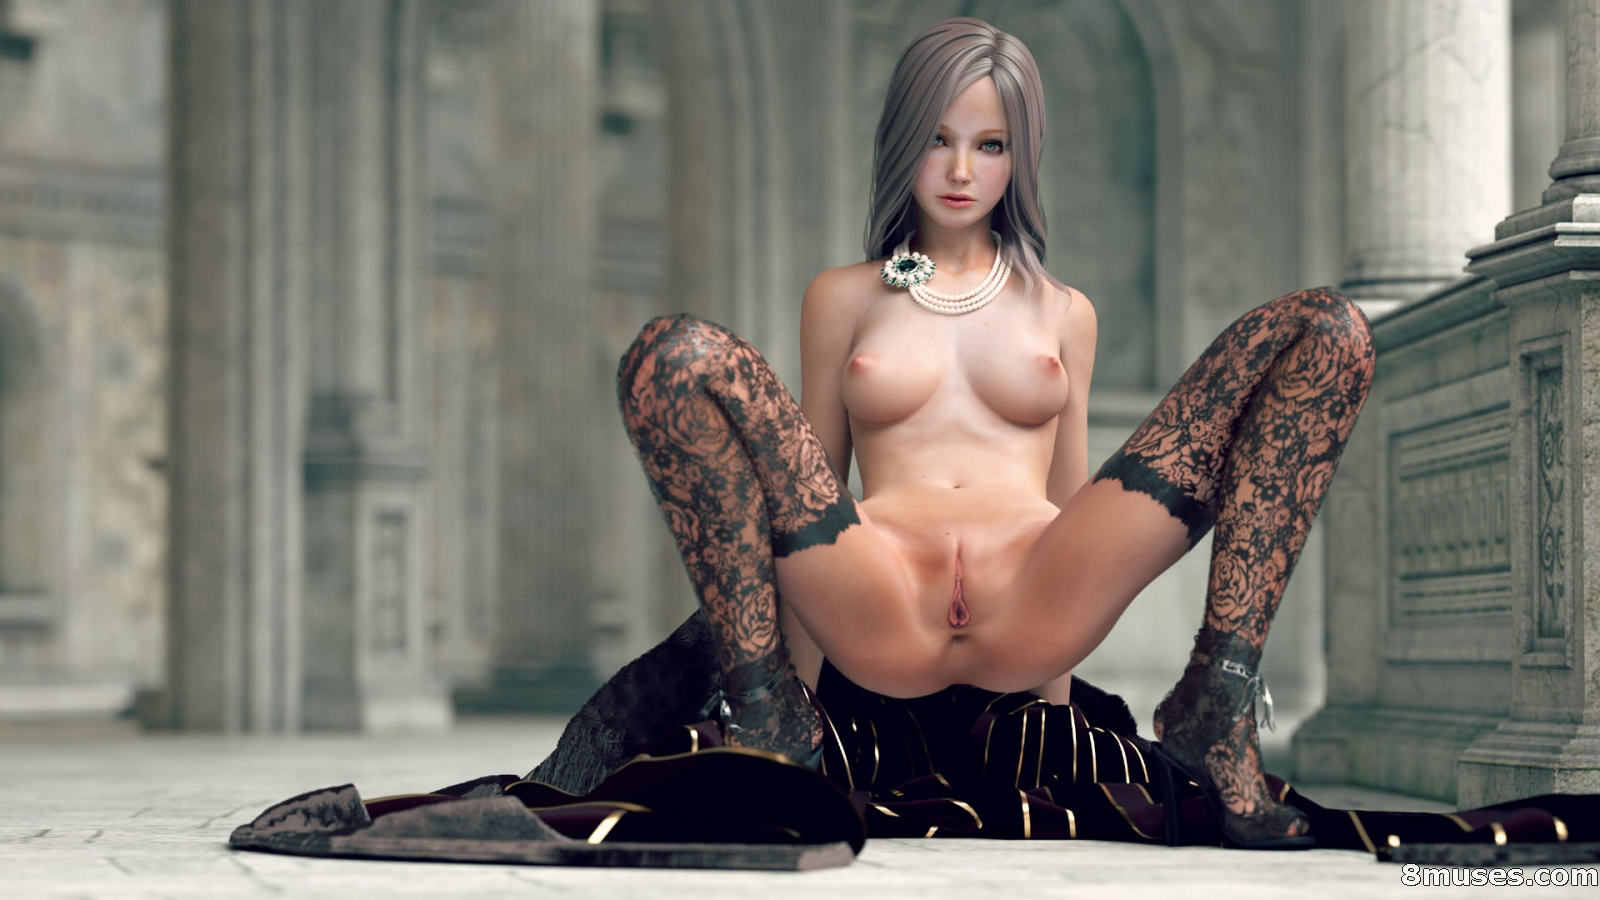 Beautiful naked girls in hd with 3d erotic photos